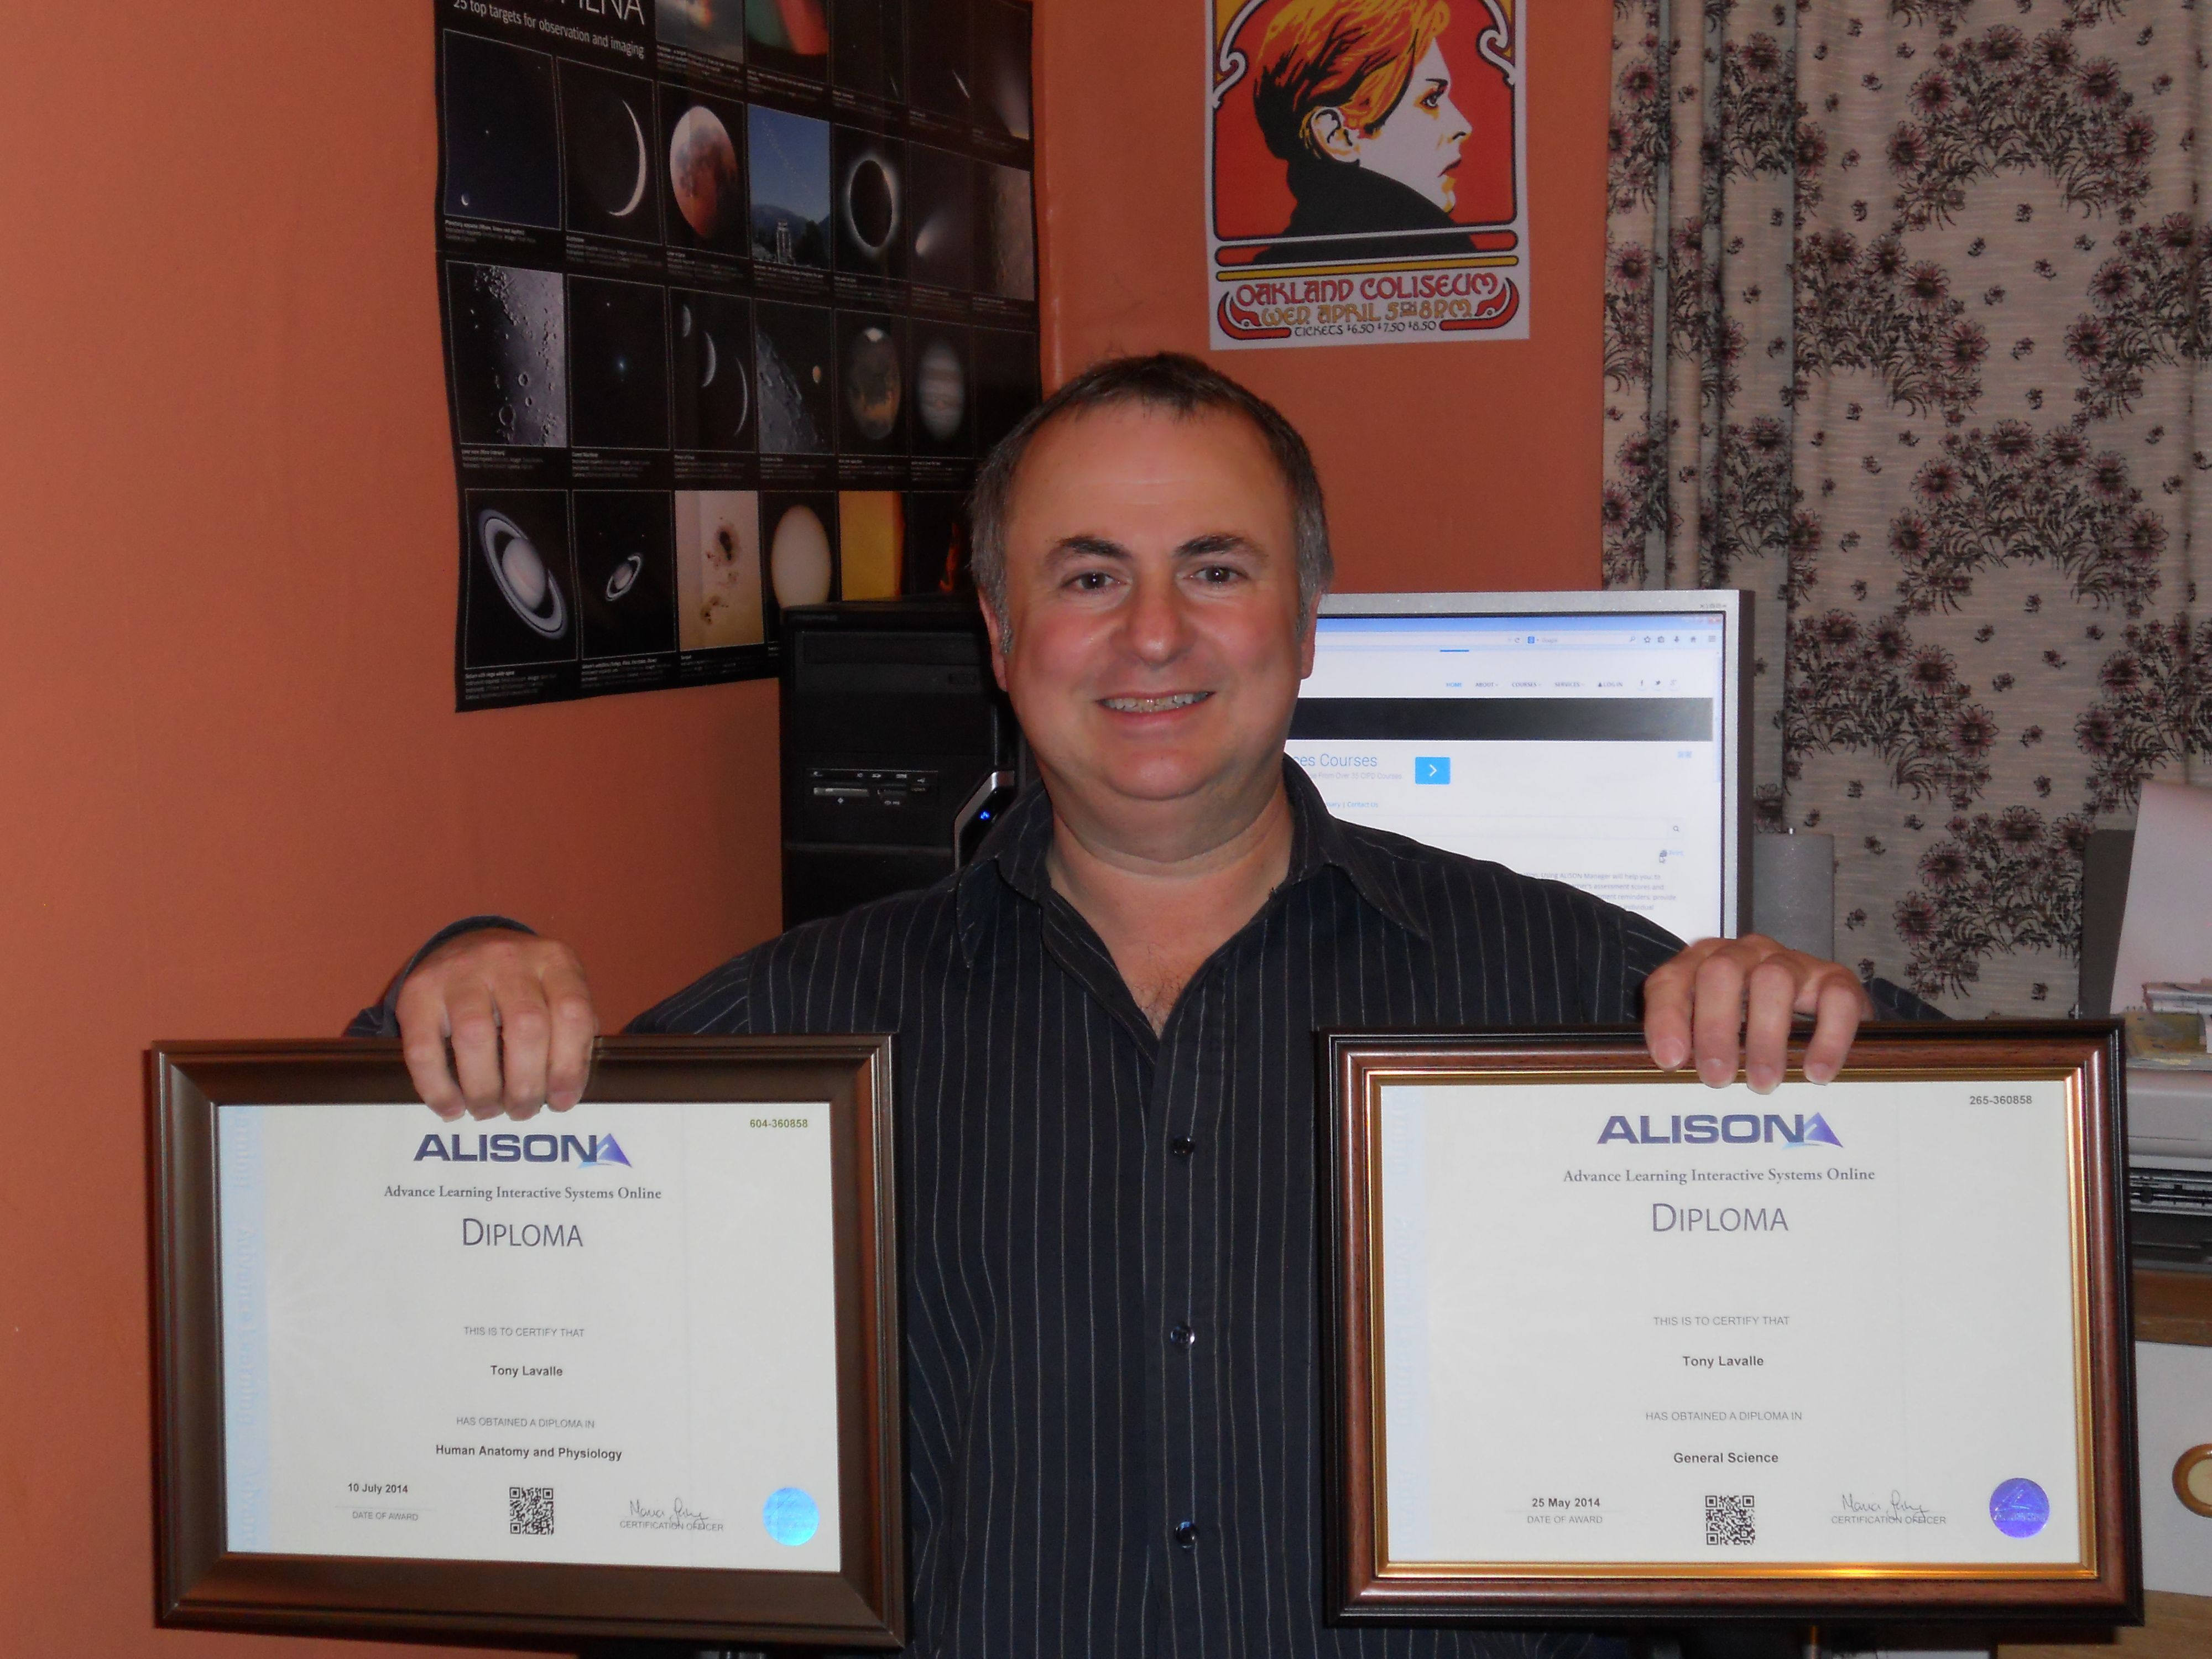 Top ALISON learner Tony Lavelle from the UK, who earned Diplomas in ...